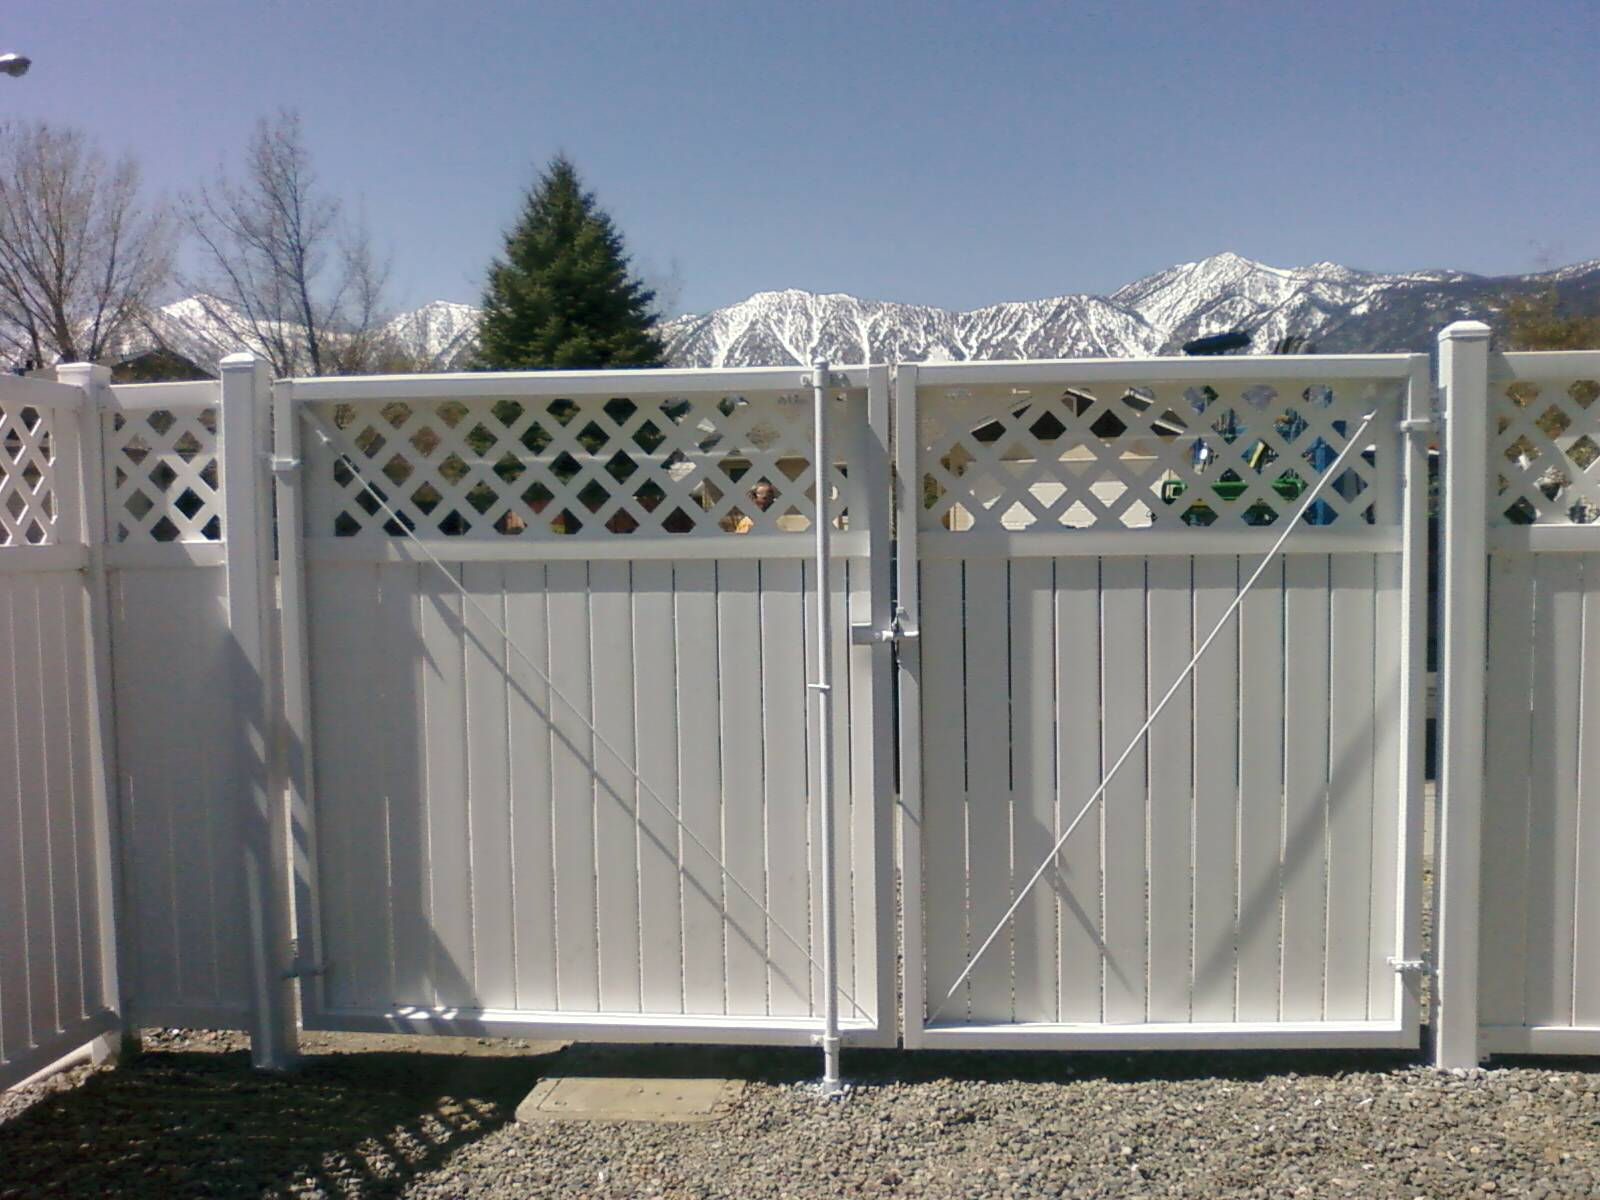 Vinyl fence with metal gate Lowes The Beauty Of Tahoe Fences Vinyl pvc Products Is In Their Simplicity And Versatility Styles Are Available That Match Many Variations Of Our Wood And Tahoe Fence Pvc Vinyl Tahoe Fence